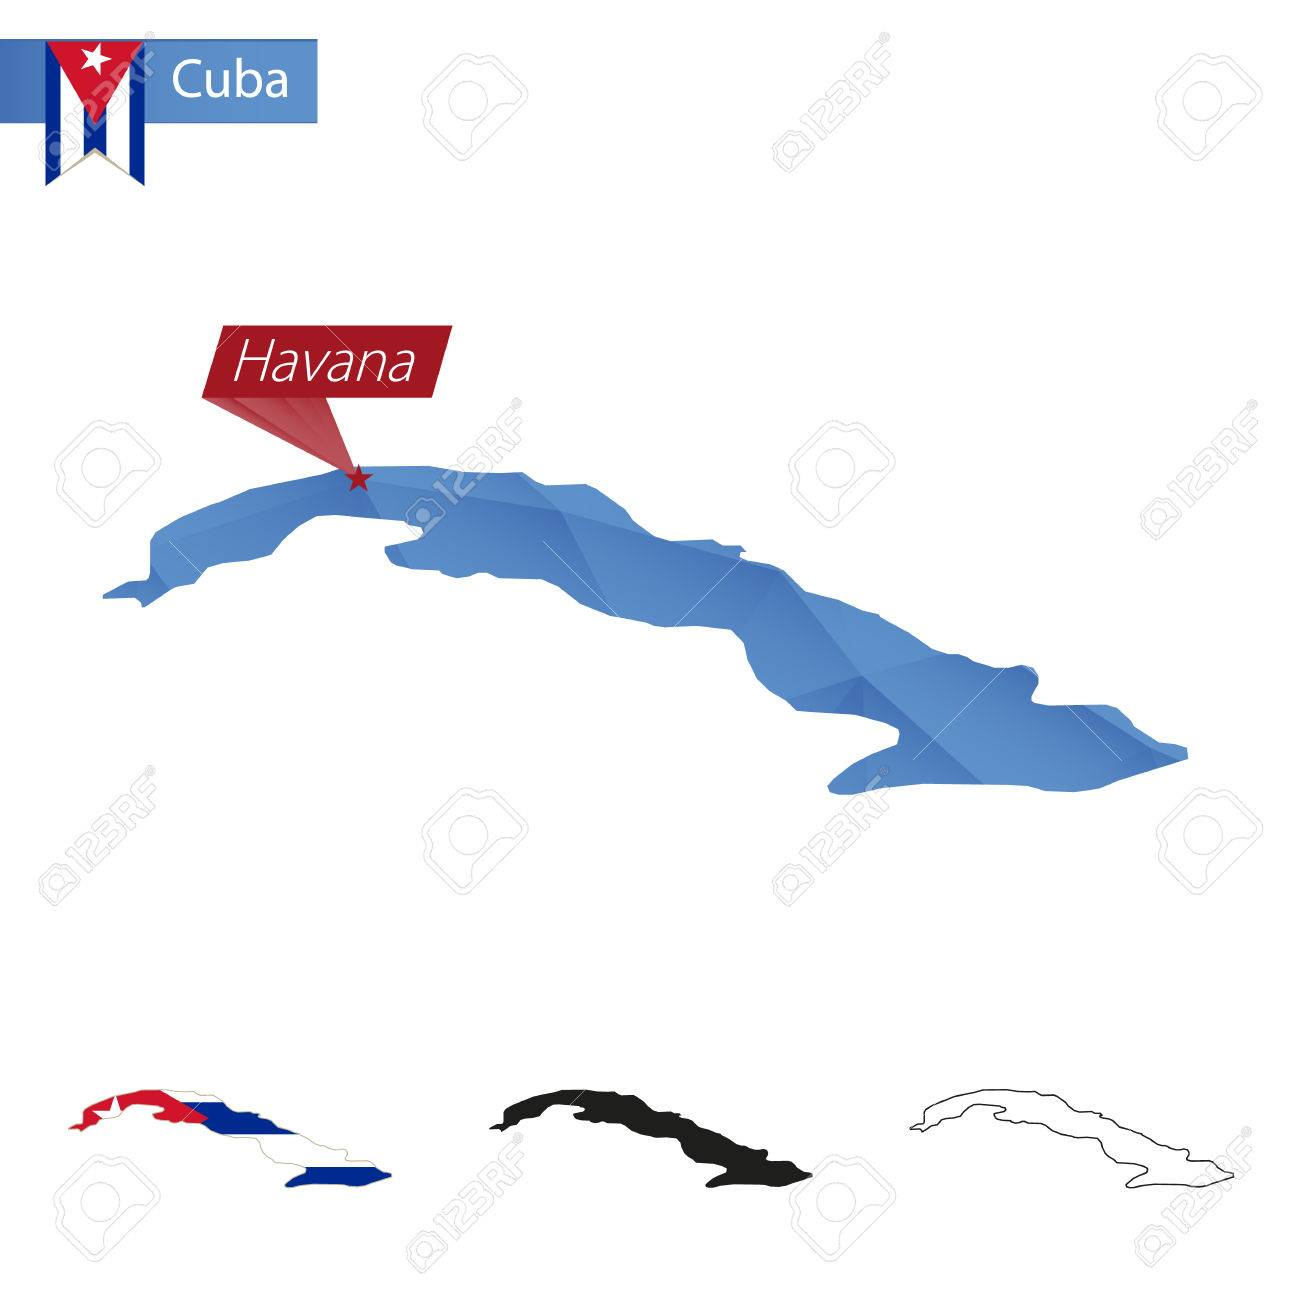 Cuba Blue Low Poly Map With Capital Havana Versions With Flag